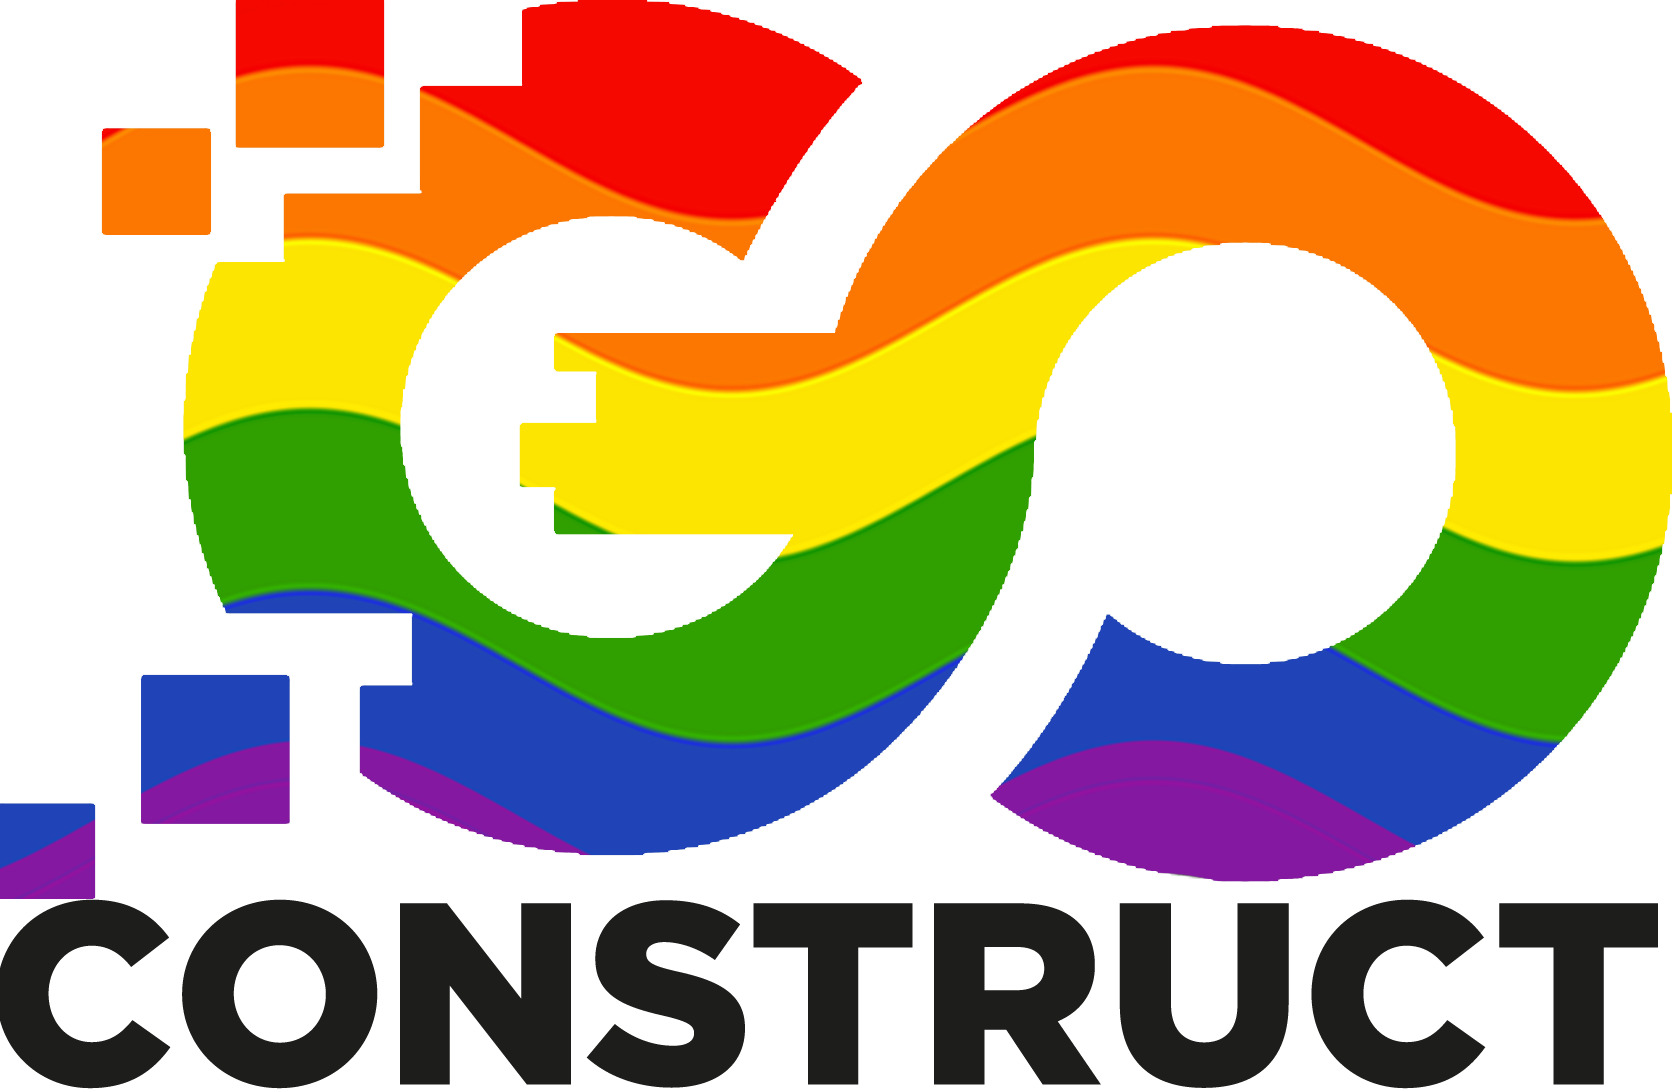 Go Construct - Industry led, funded by the CITB levy